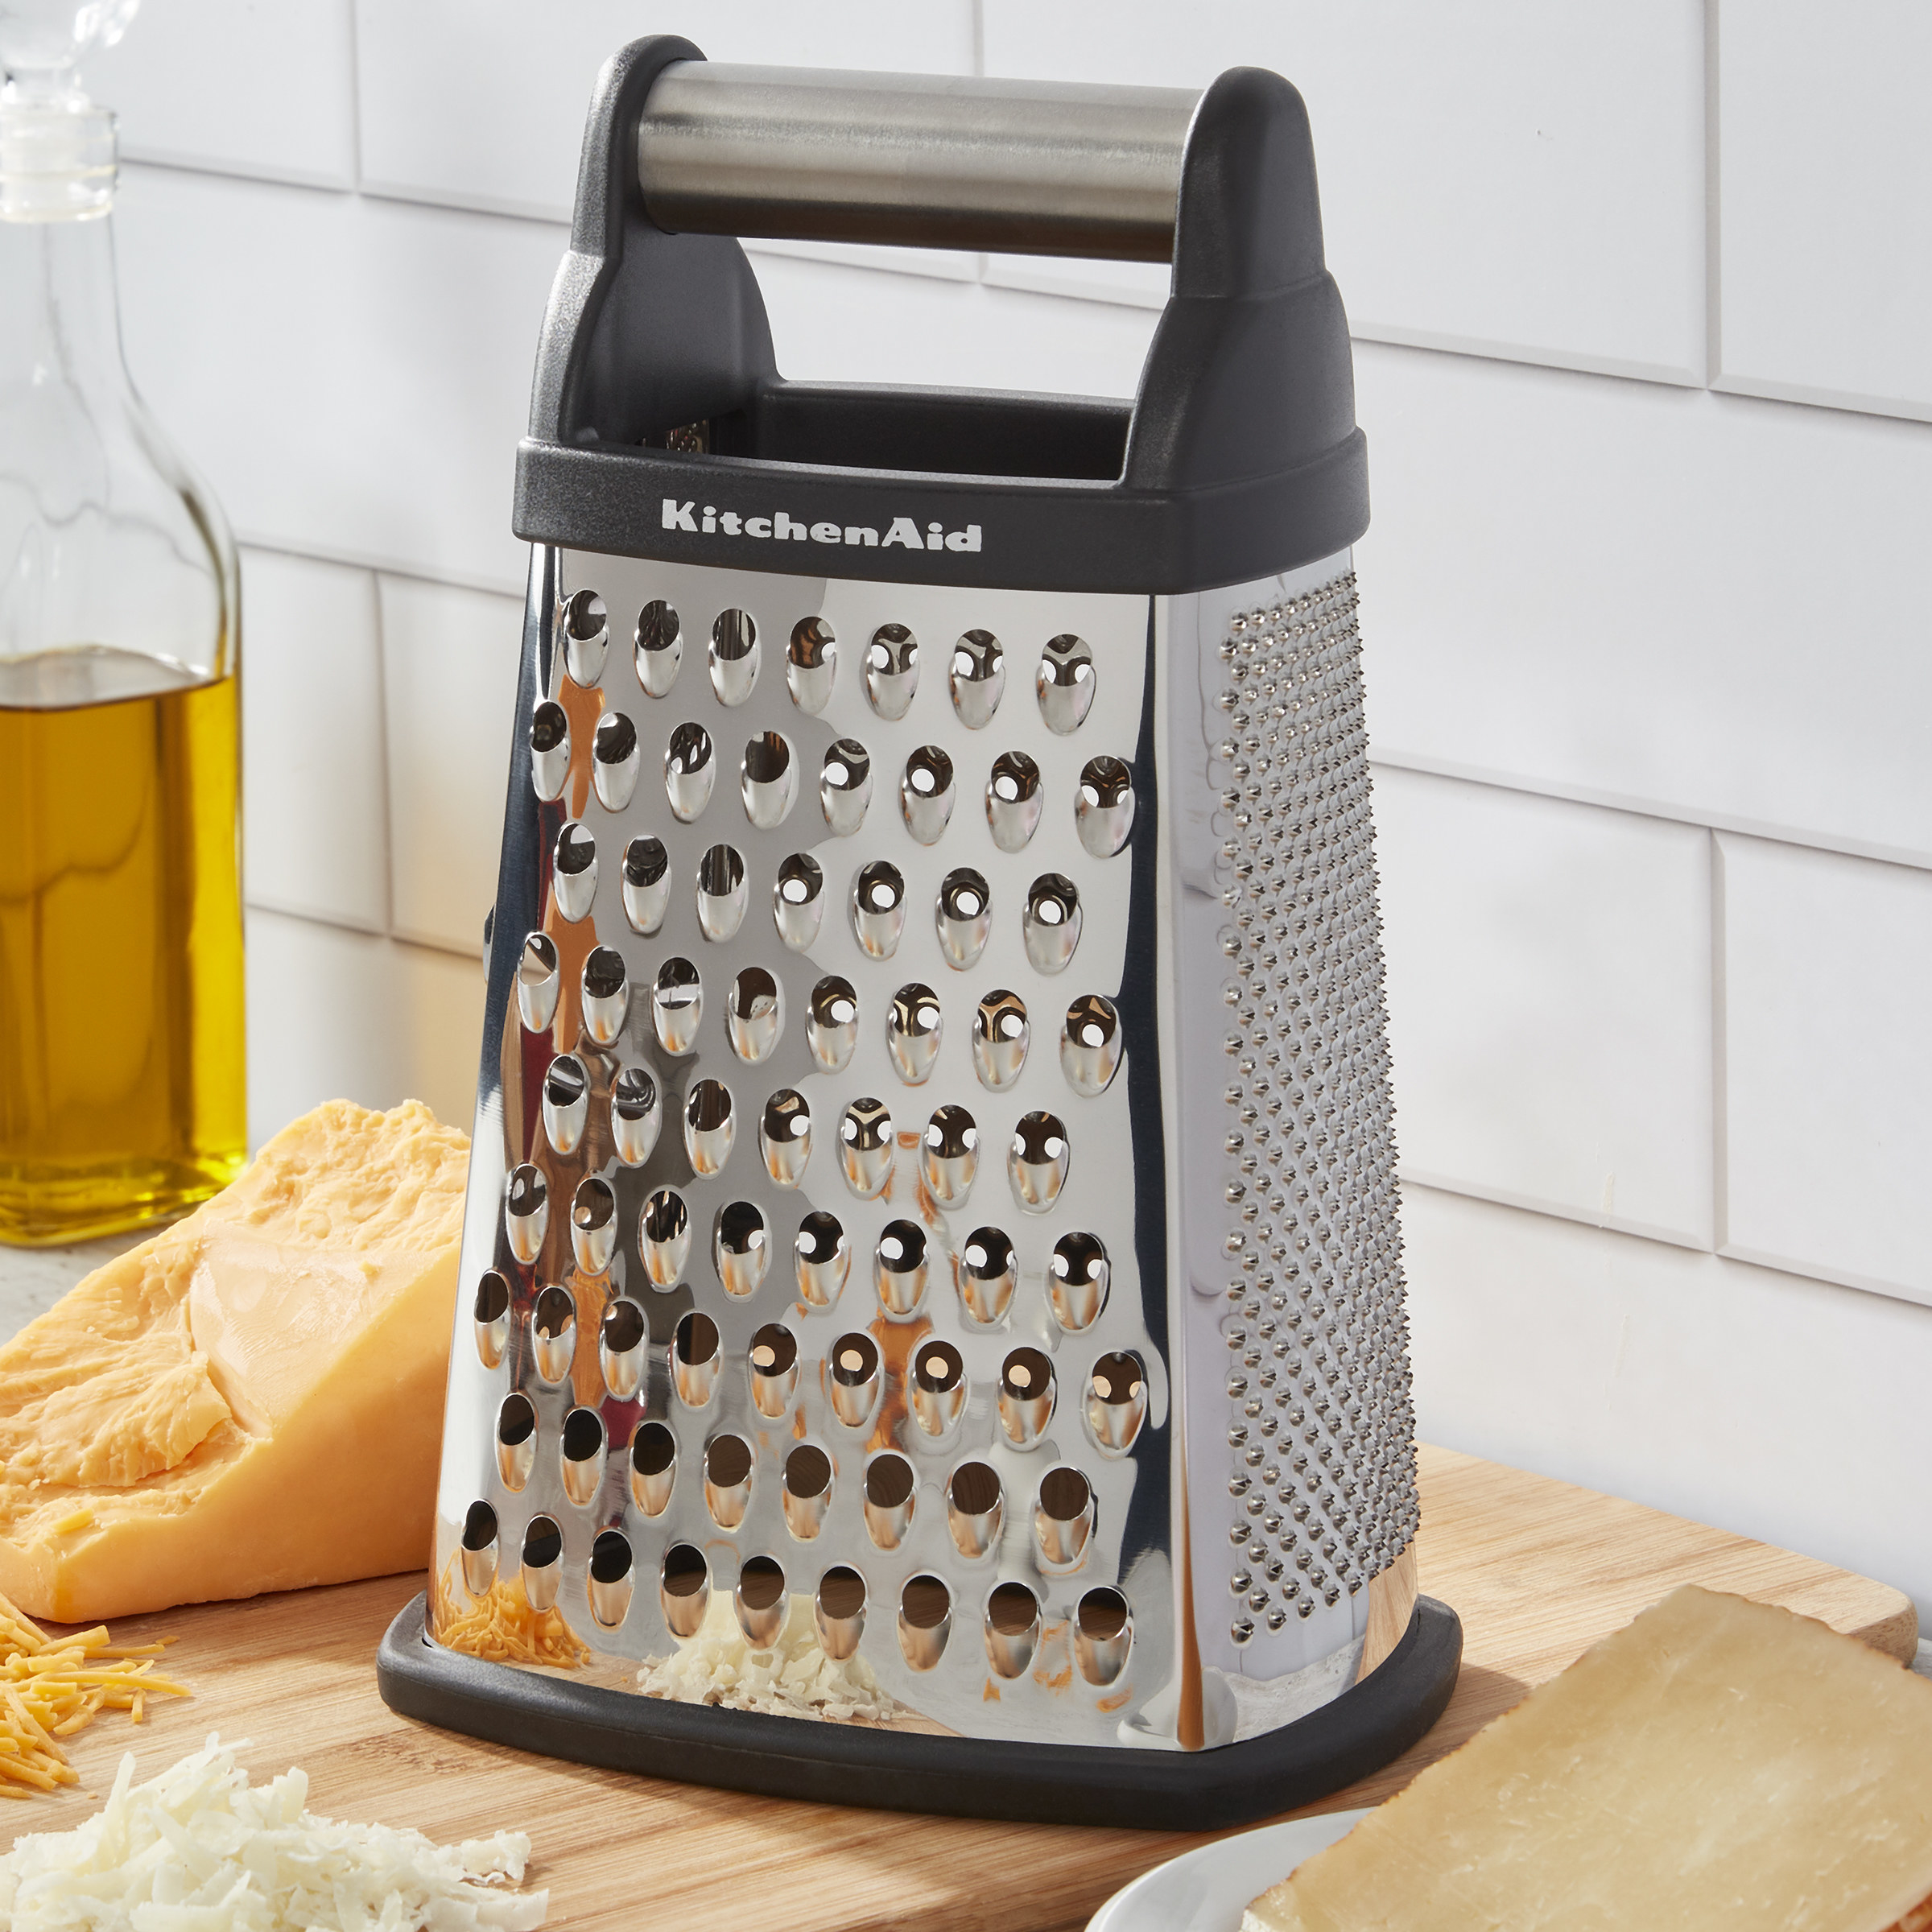 The silver-colored KitchenAid box greater, pictured on a cutting board with cheeses